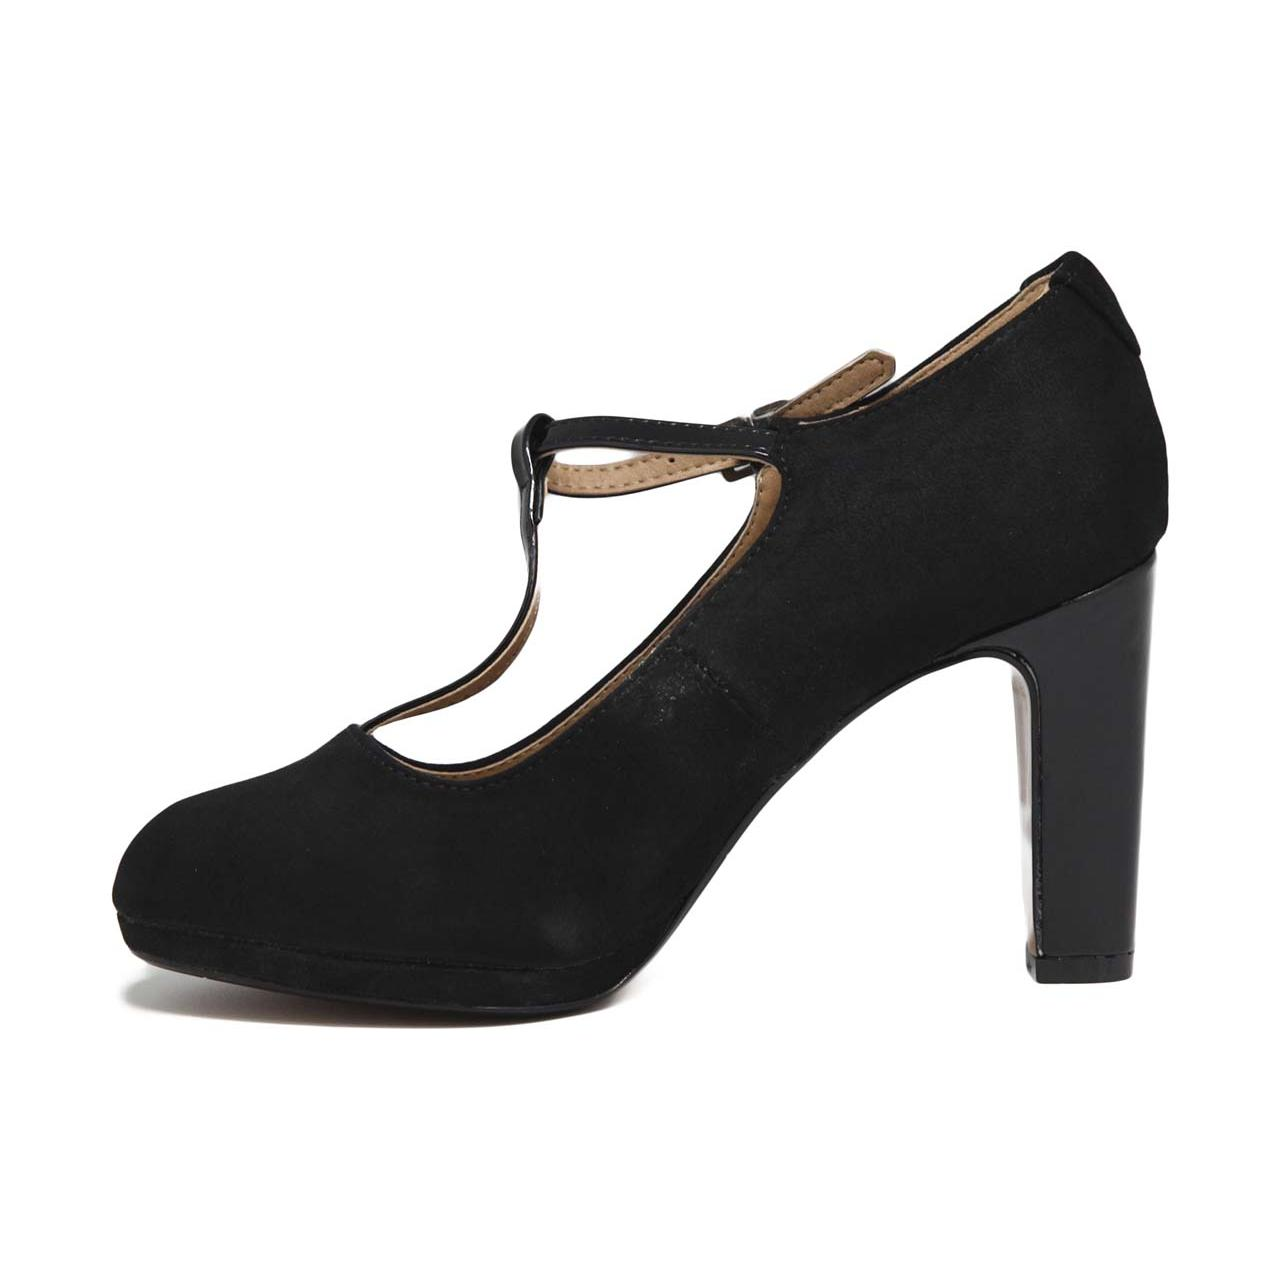 Aliexpress.com   Buy MARIA MARE MUJER 61892 MARIA MARE ANTE ZAPATOS DE  TACON from Reliable Women's Pumps suppliers on Calzados Rumbo Store 5f1ee9368c13